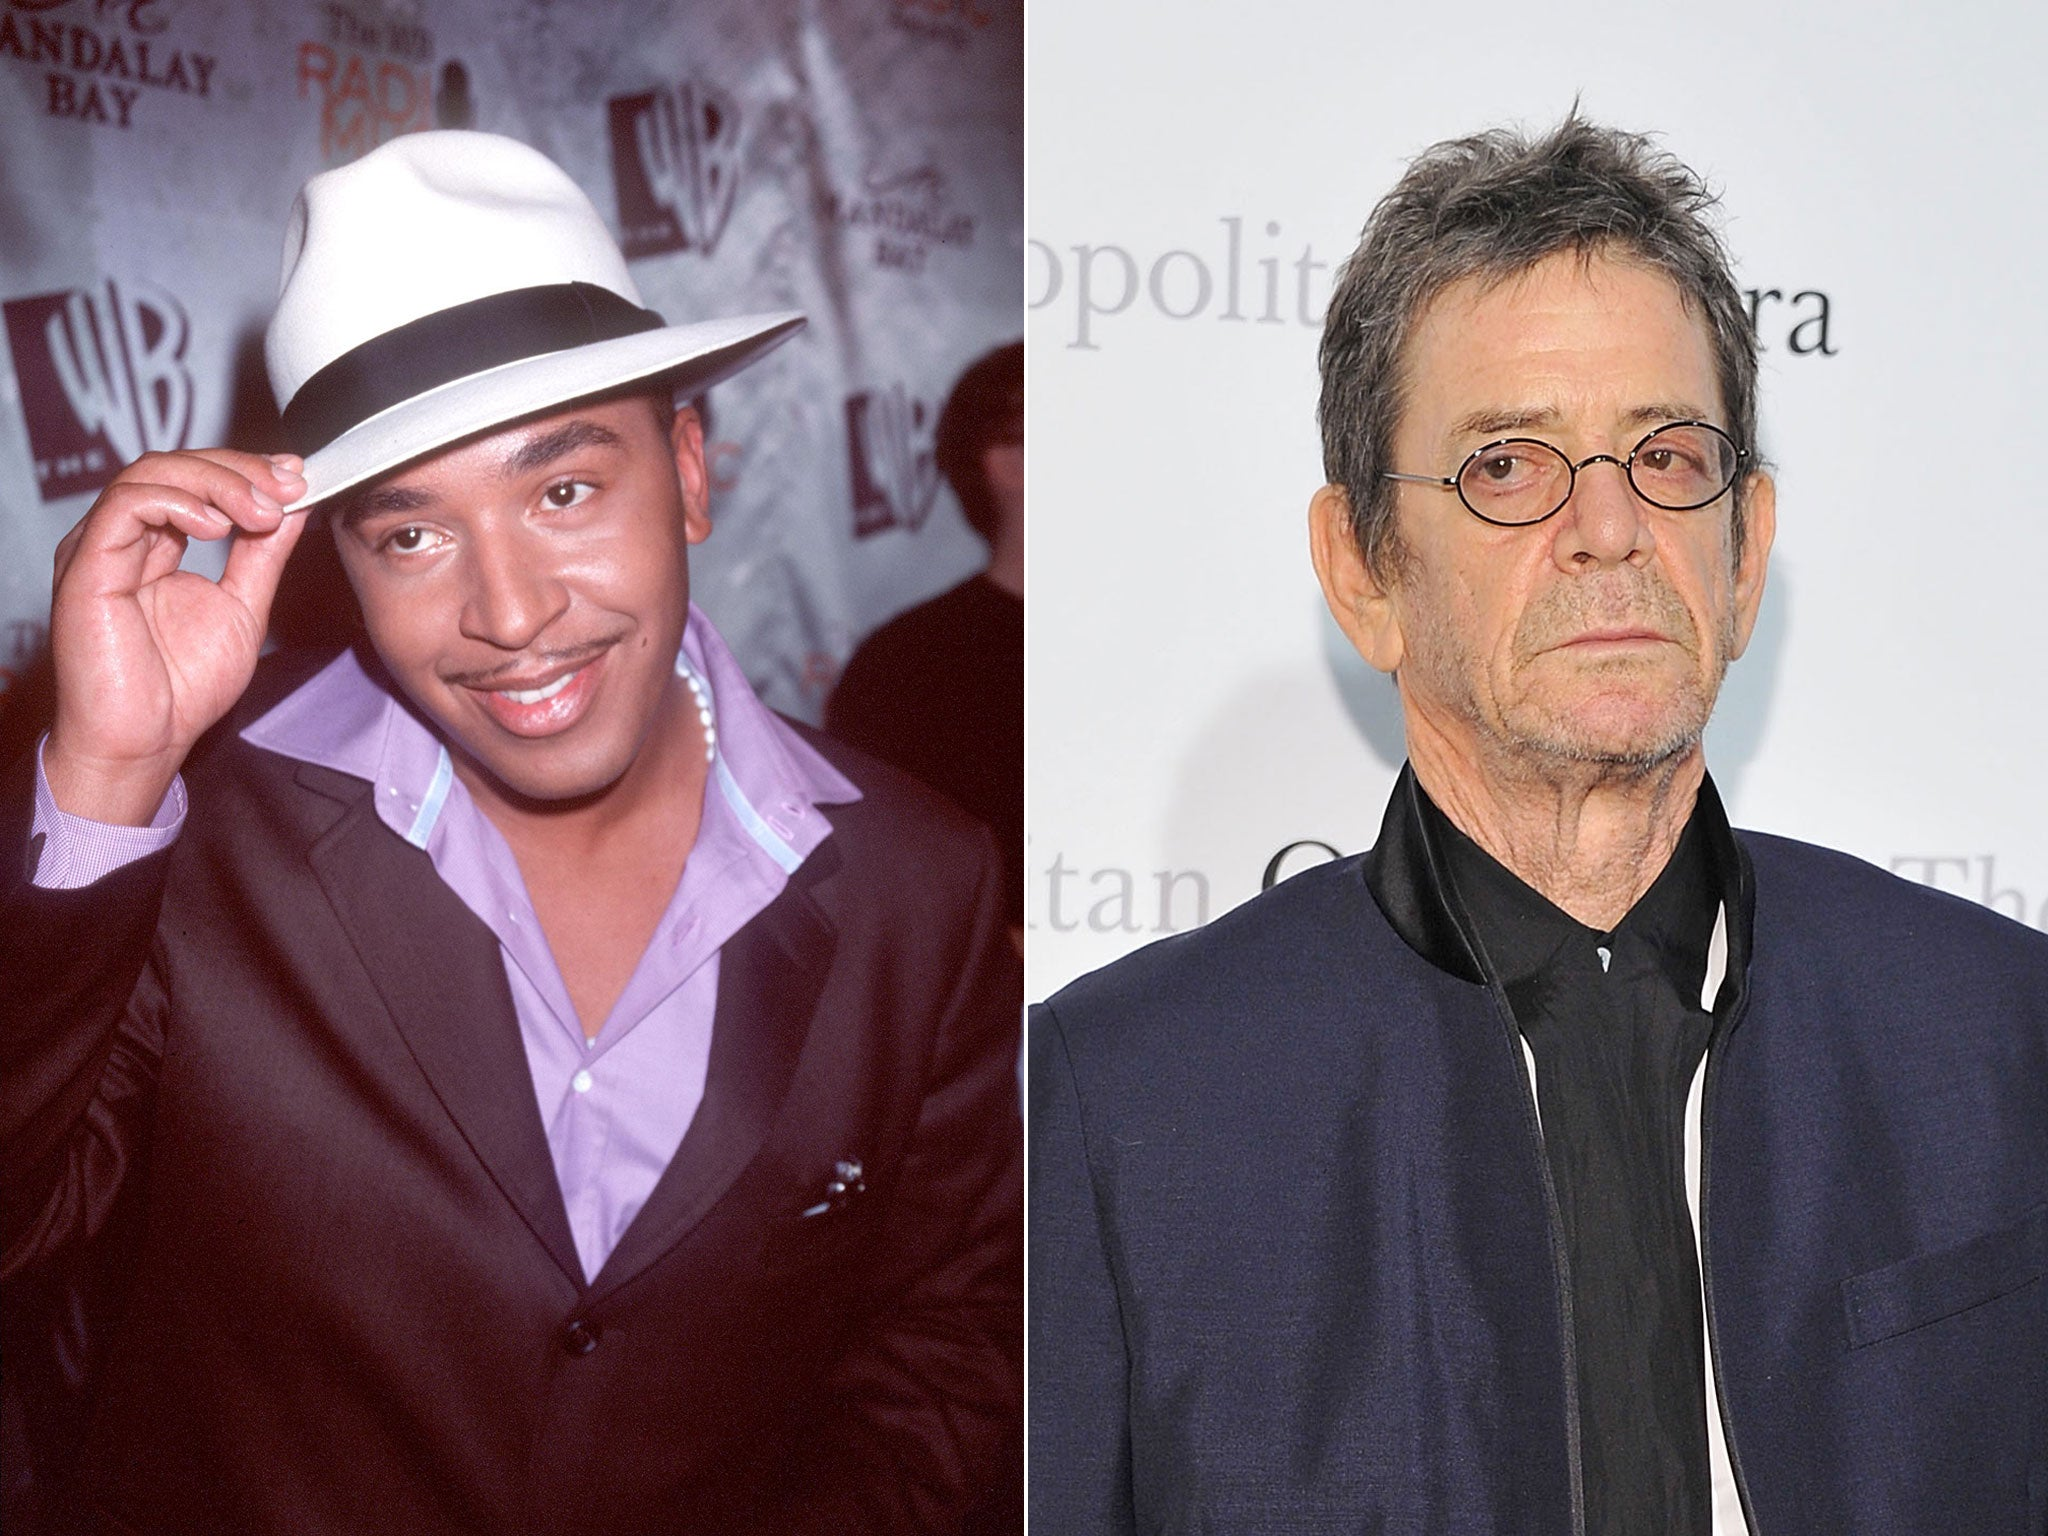 Lou Bega confirms he's still alive after Lou Reed death